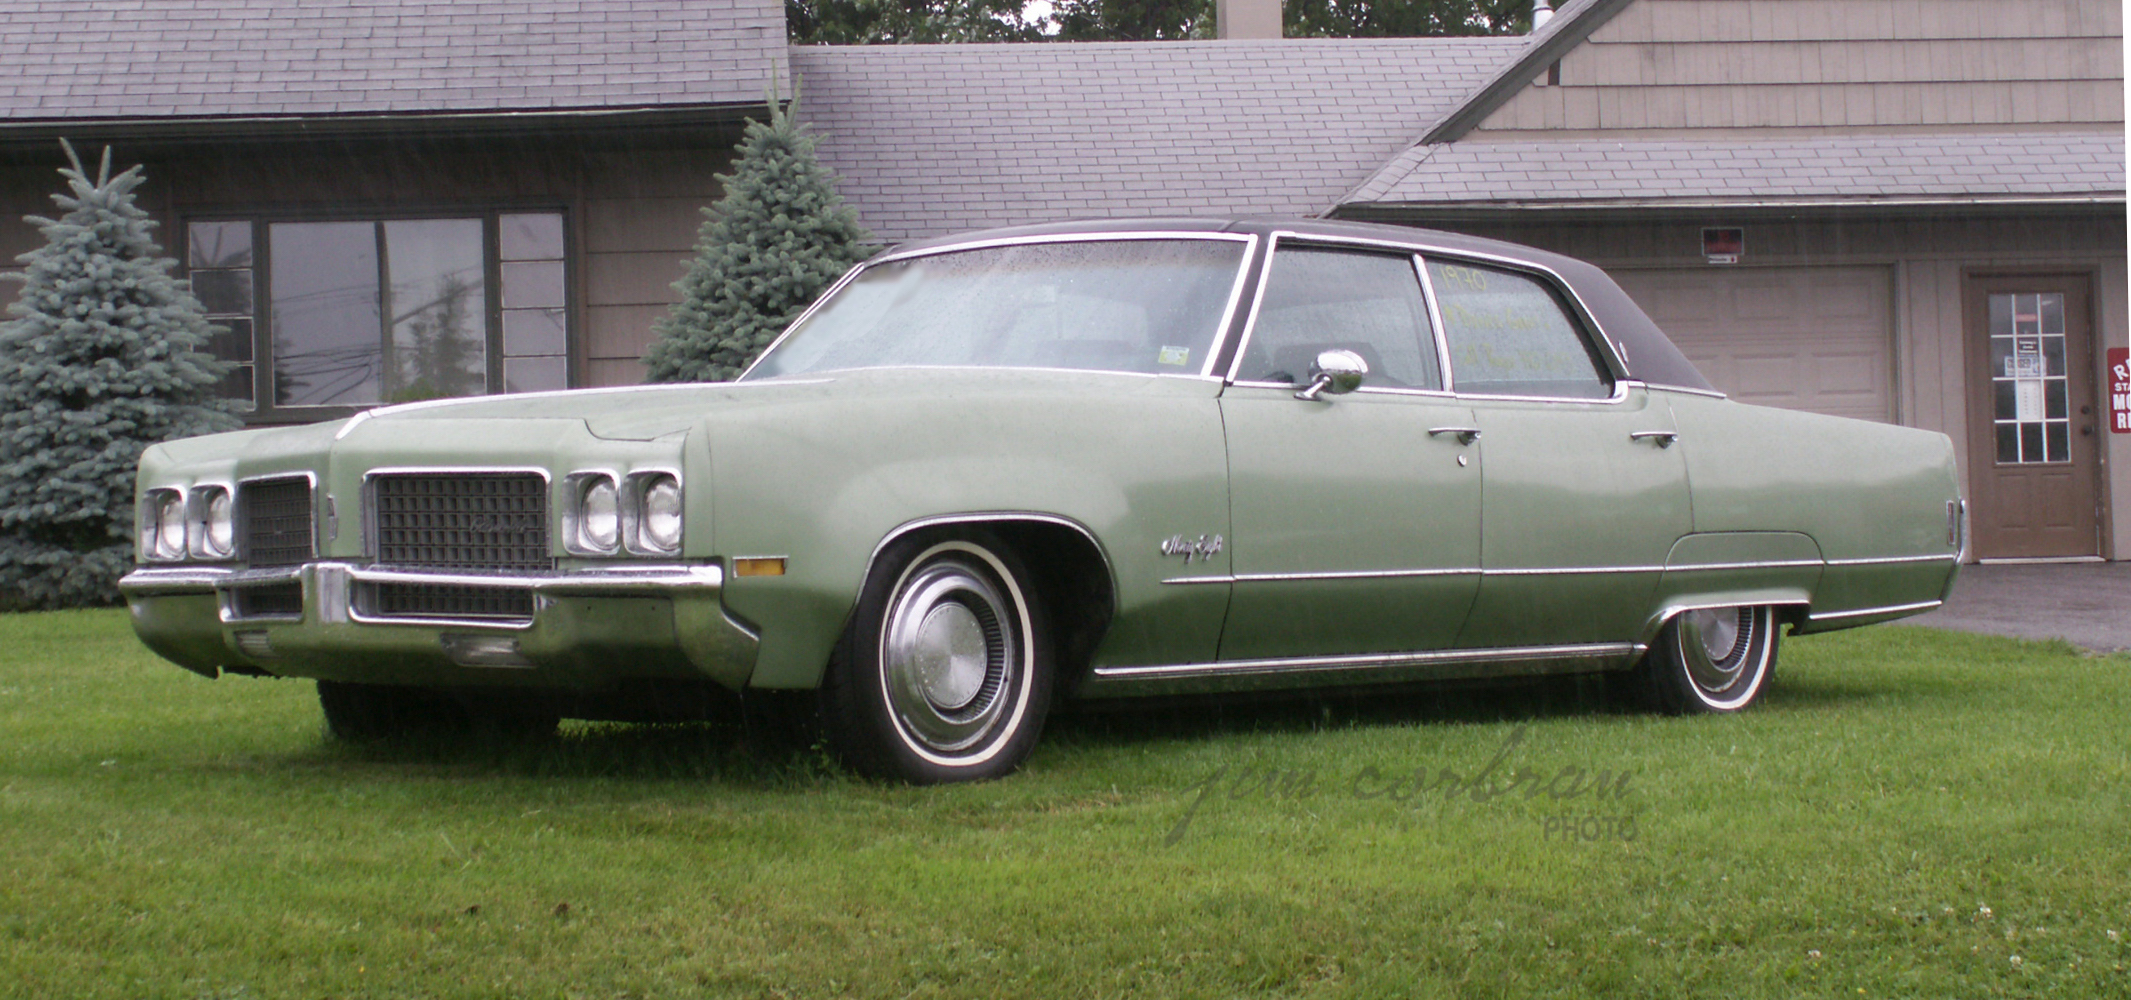 RealRides of WNY - 1970 Olds Ninety-Eight